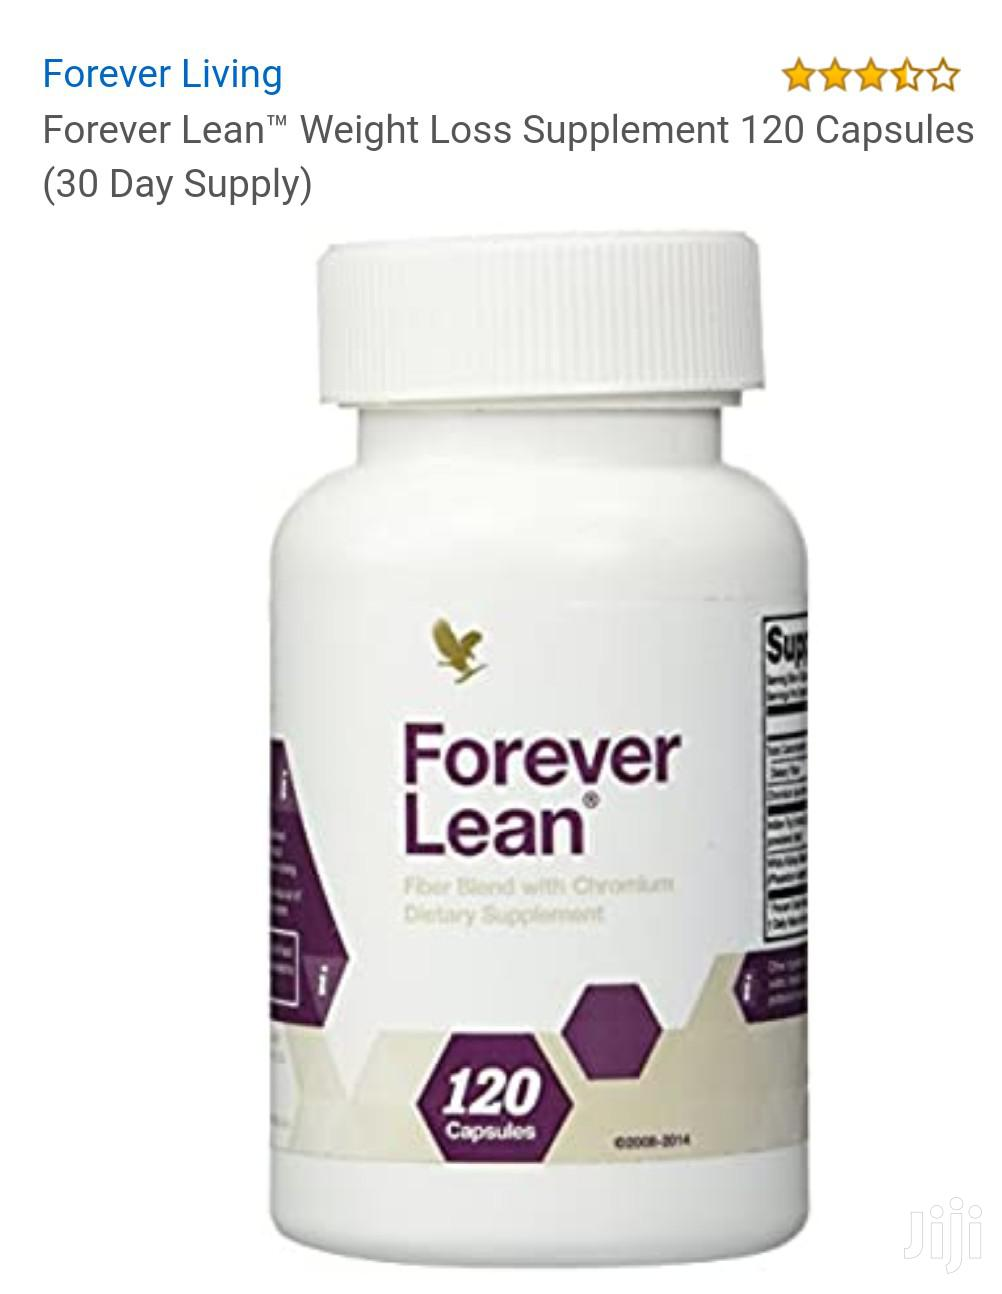 Forever Lean (Most Effective Weight Loss Supplement)